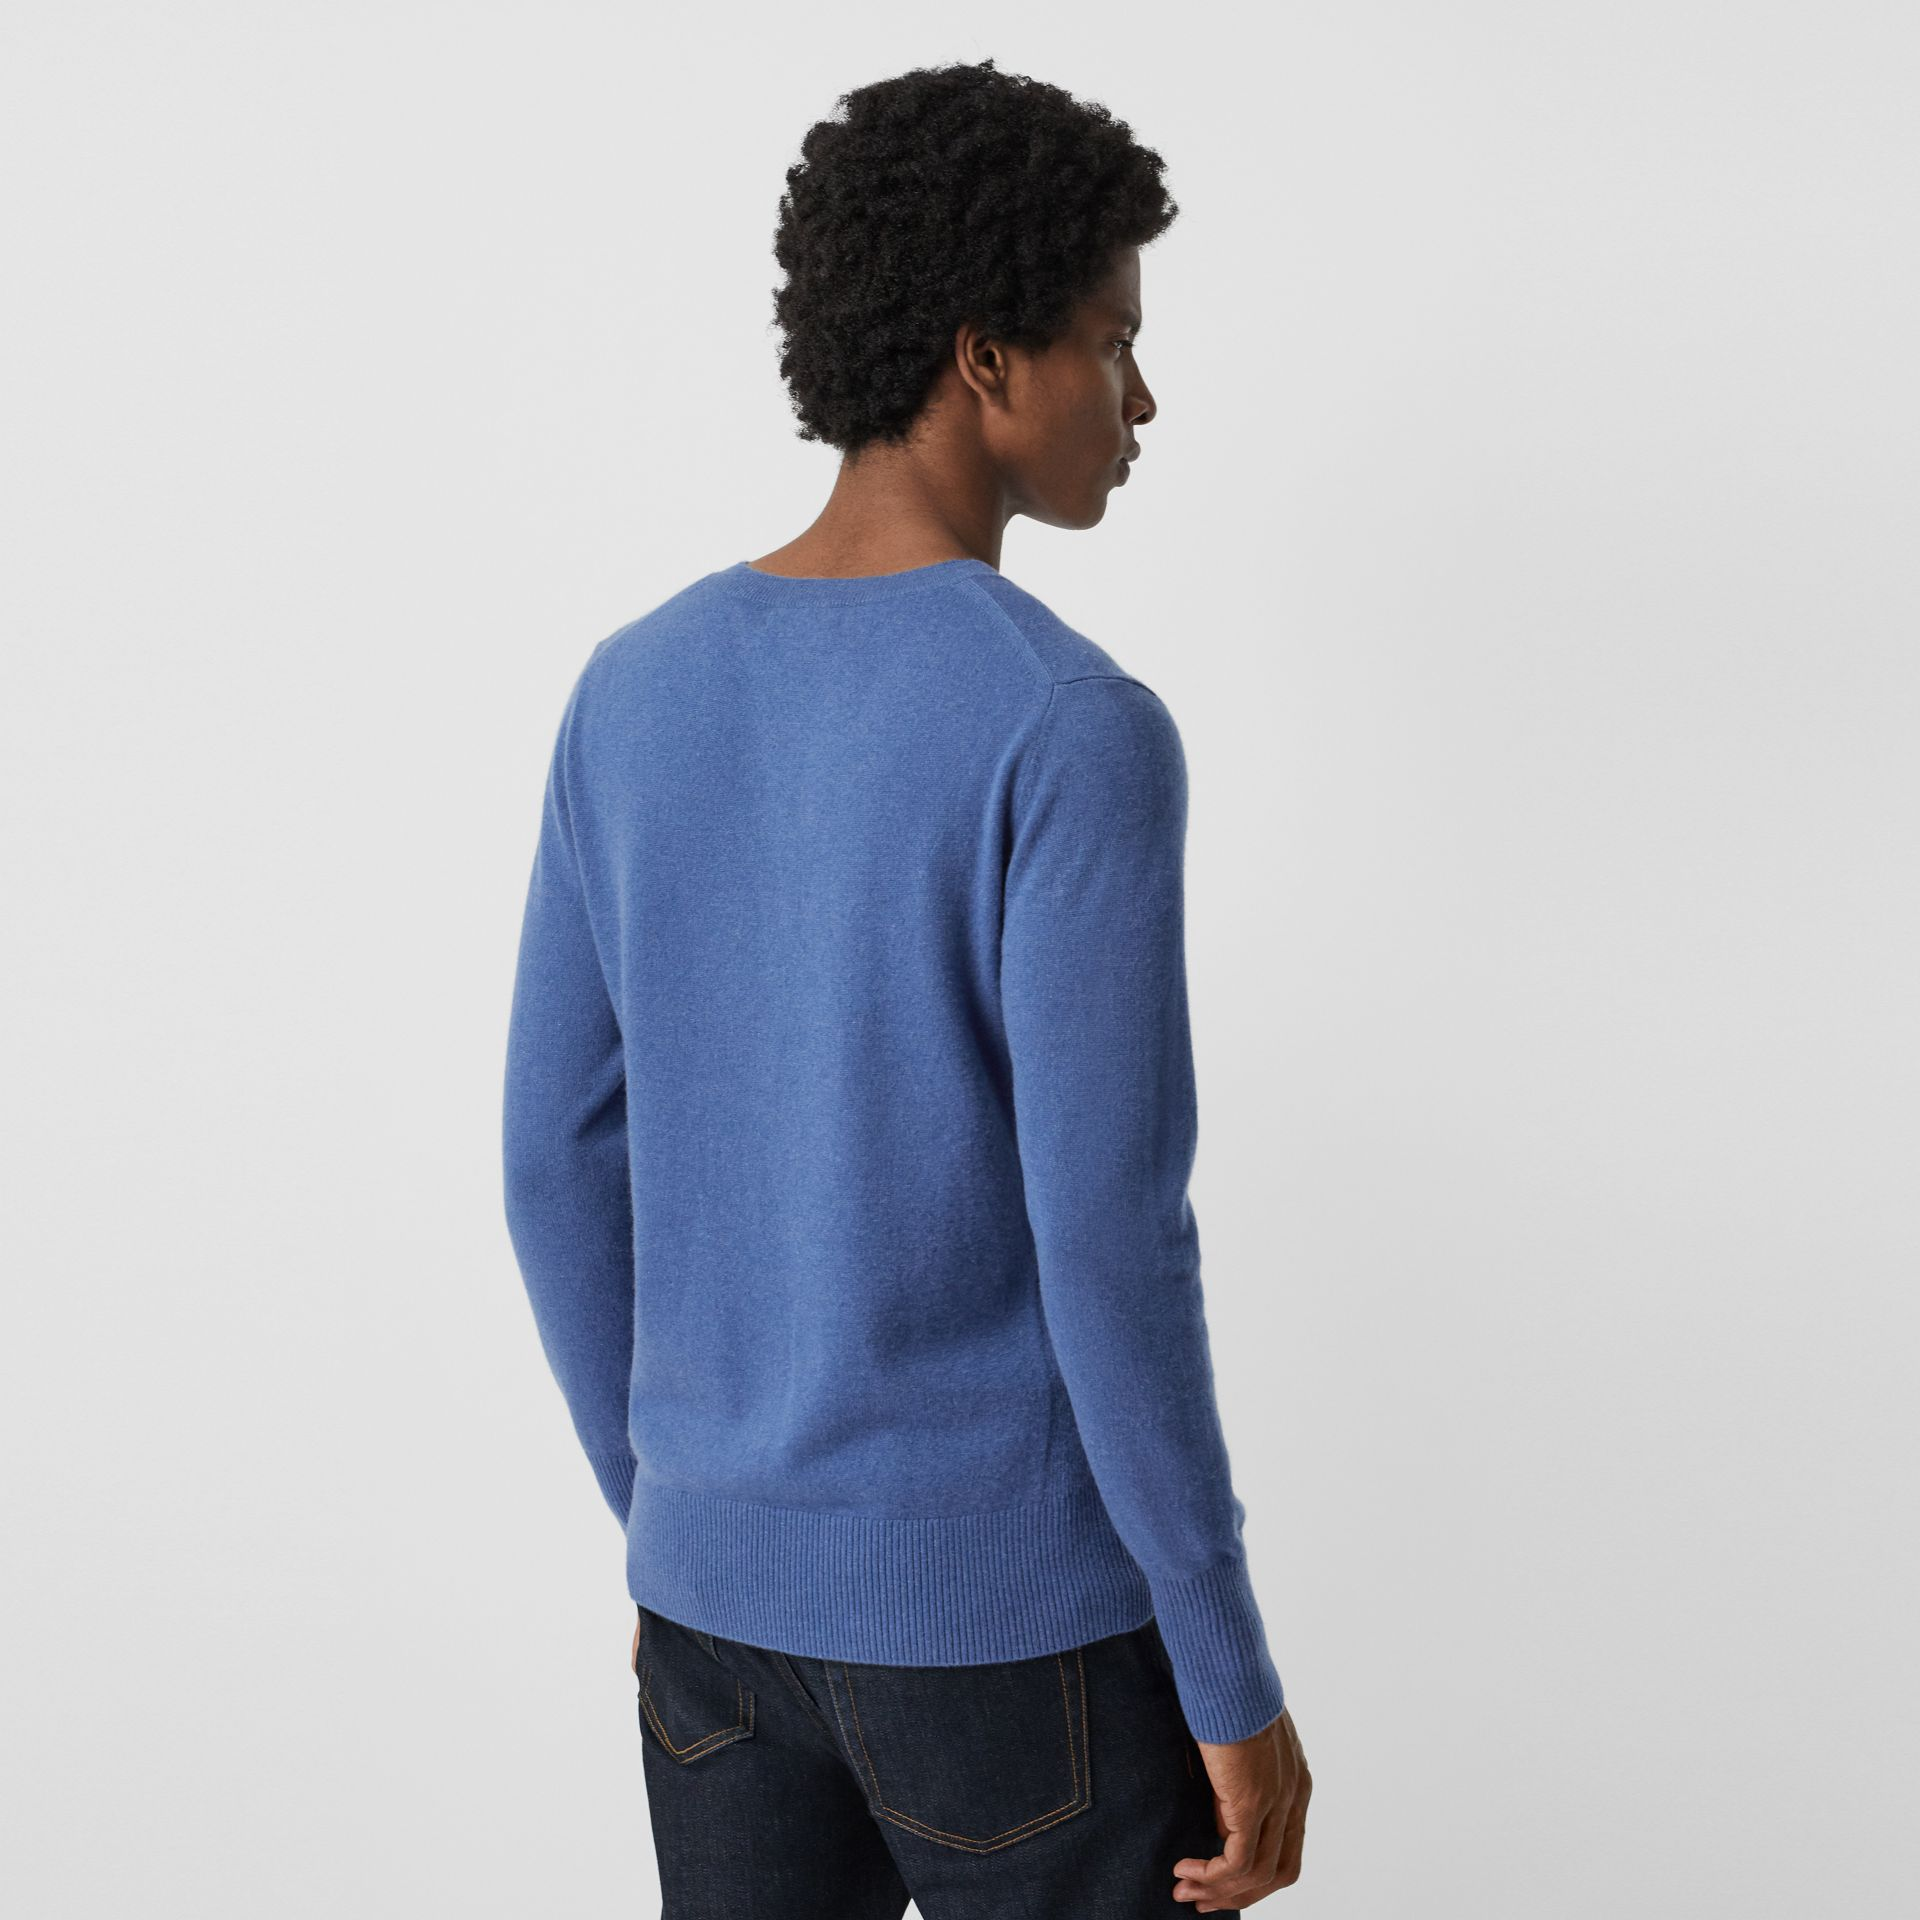 Embroidered Logo Cashmere Sweater in Dusty Blue - Men | Burberry - gallery image 2